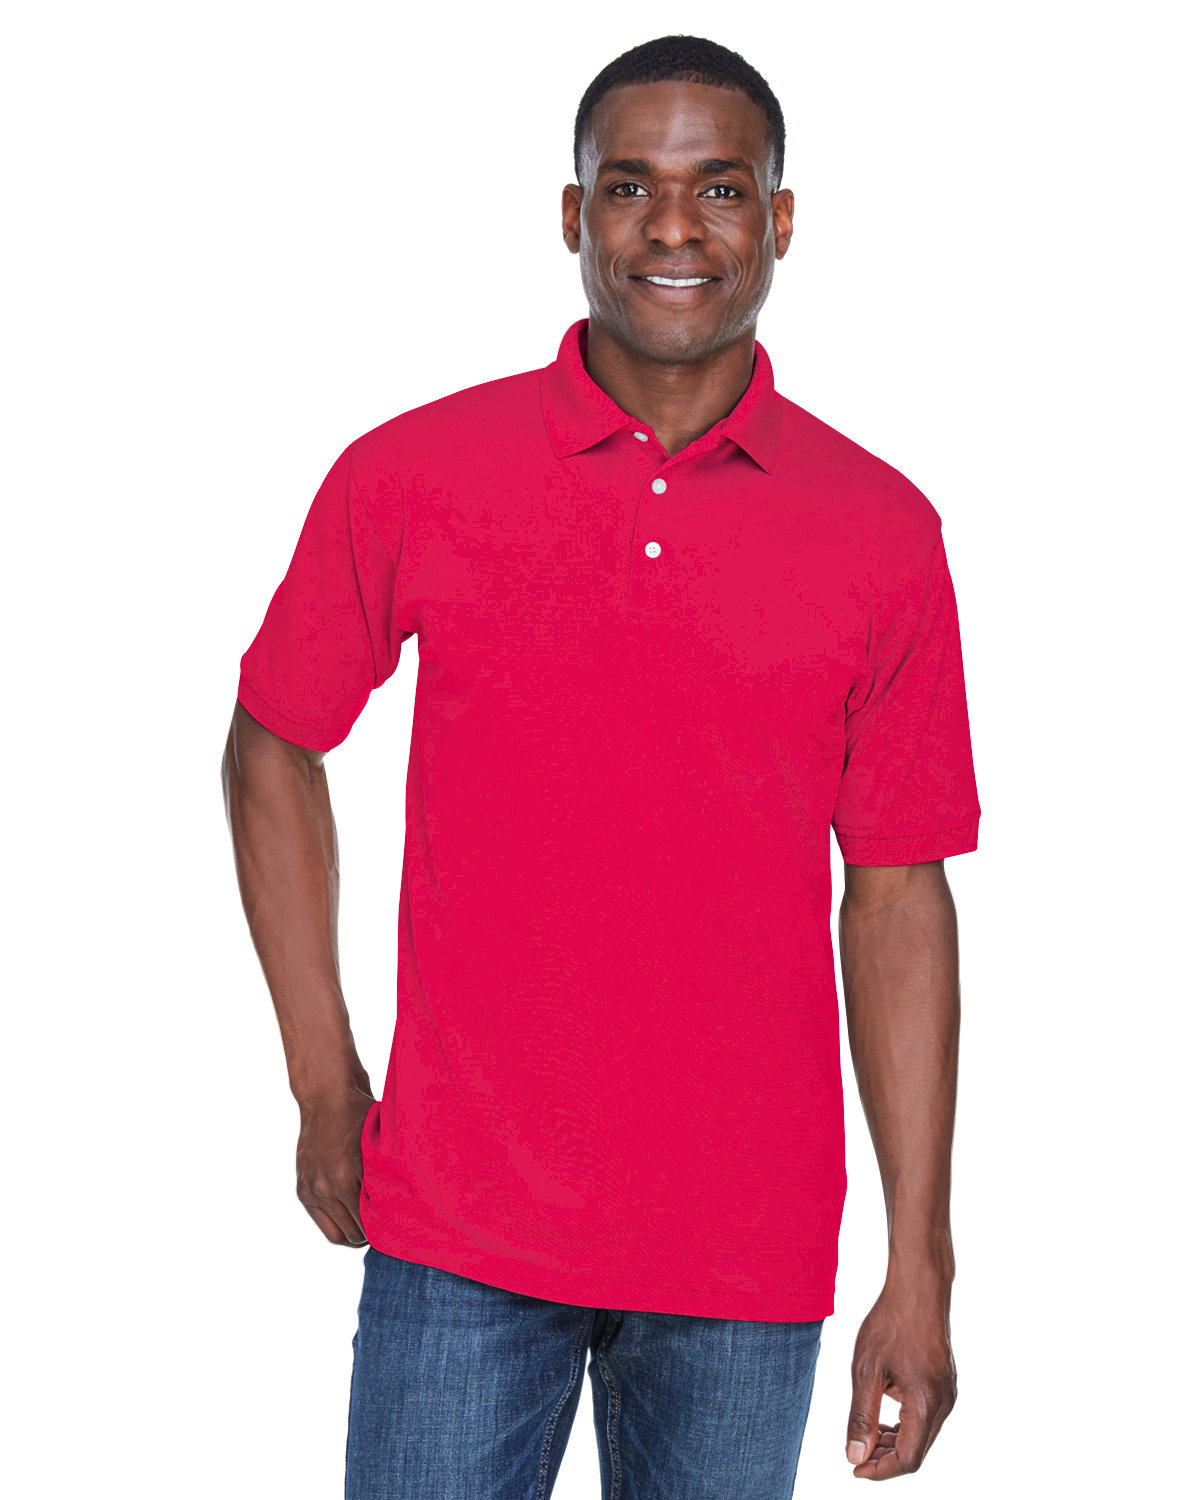 UltraClub Men's PlatinumPerformance Piqué Polo with TempControl Technology RED